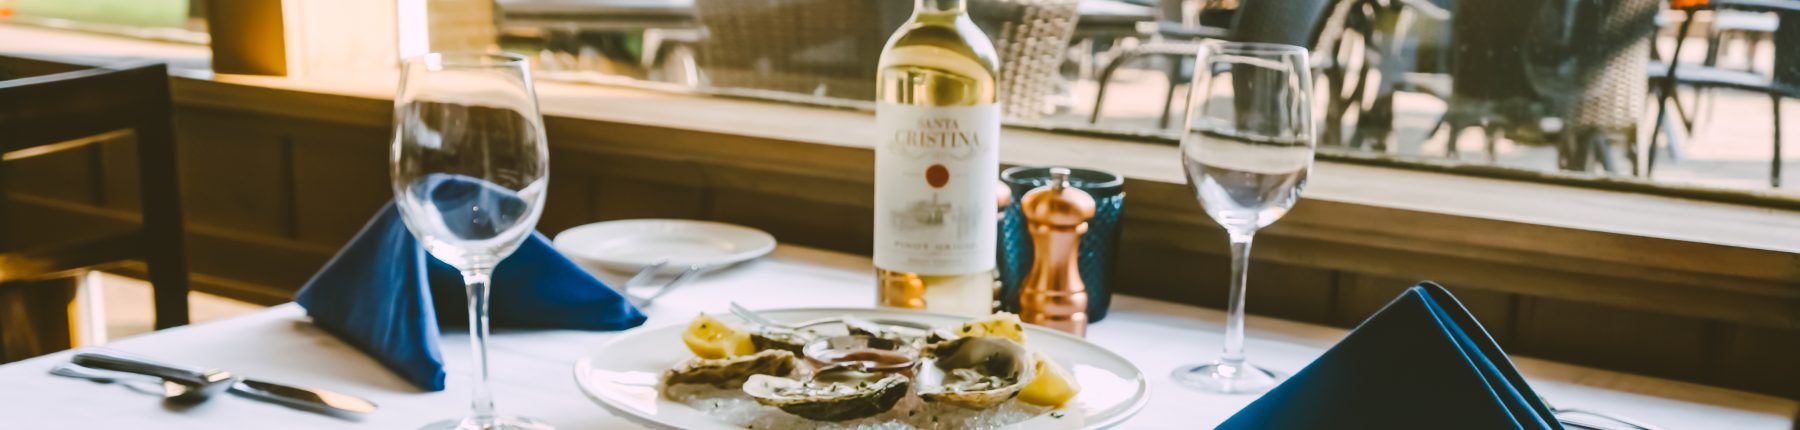 plate of oysters and a bottle of white wine